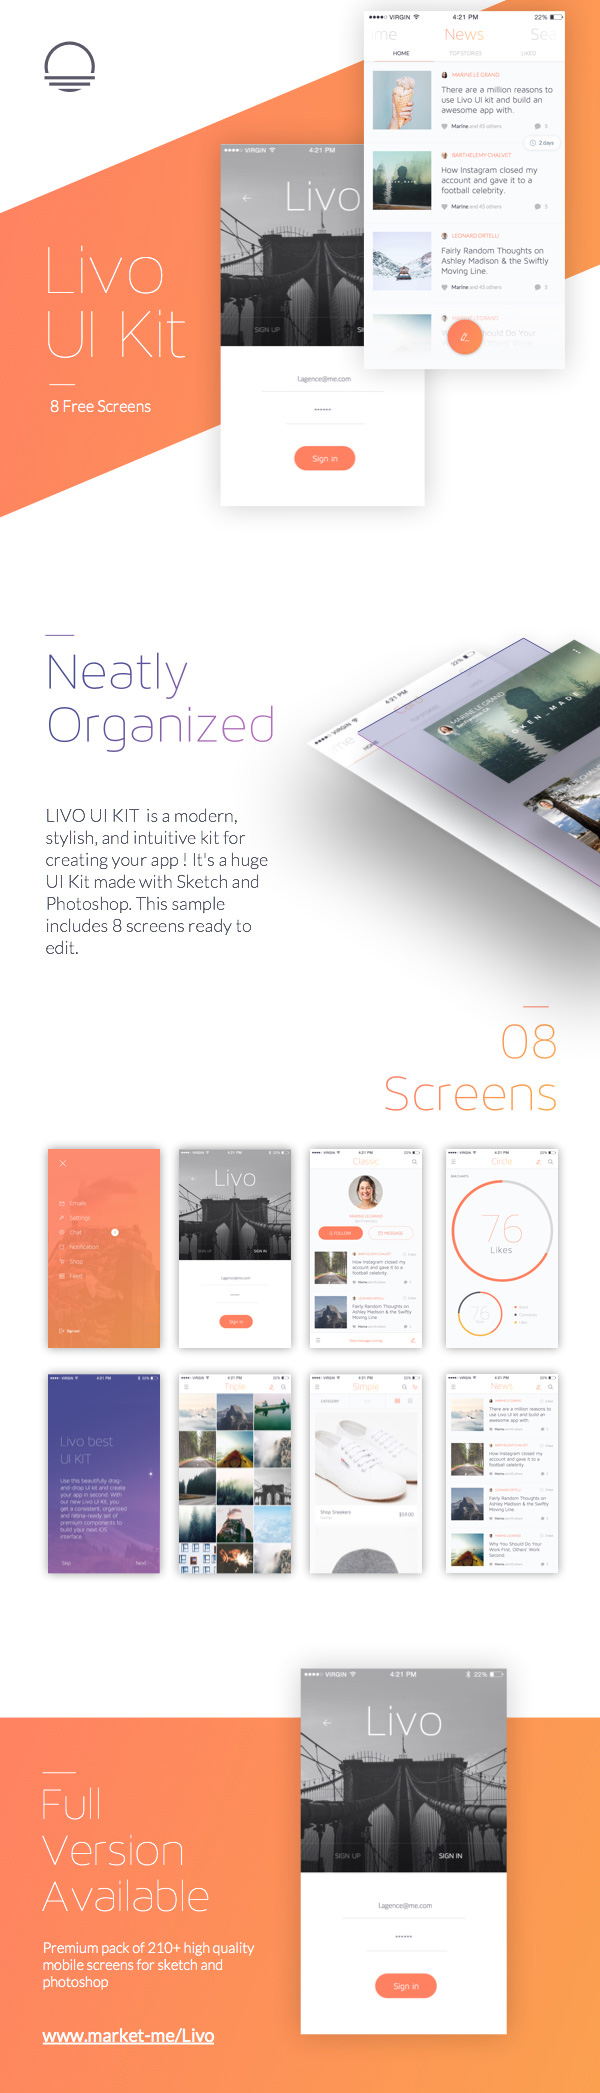 Livo Neatly Organized Free UI Kit